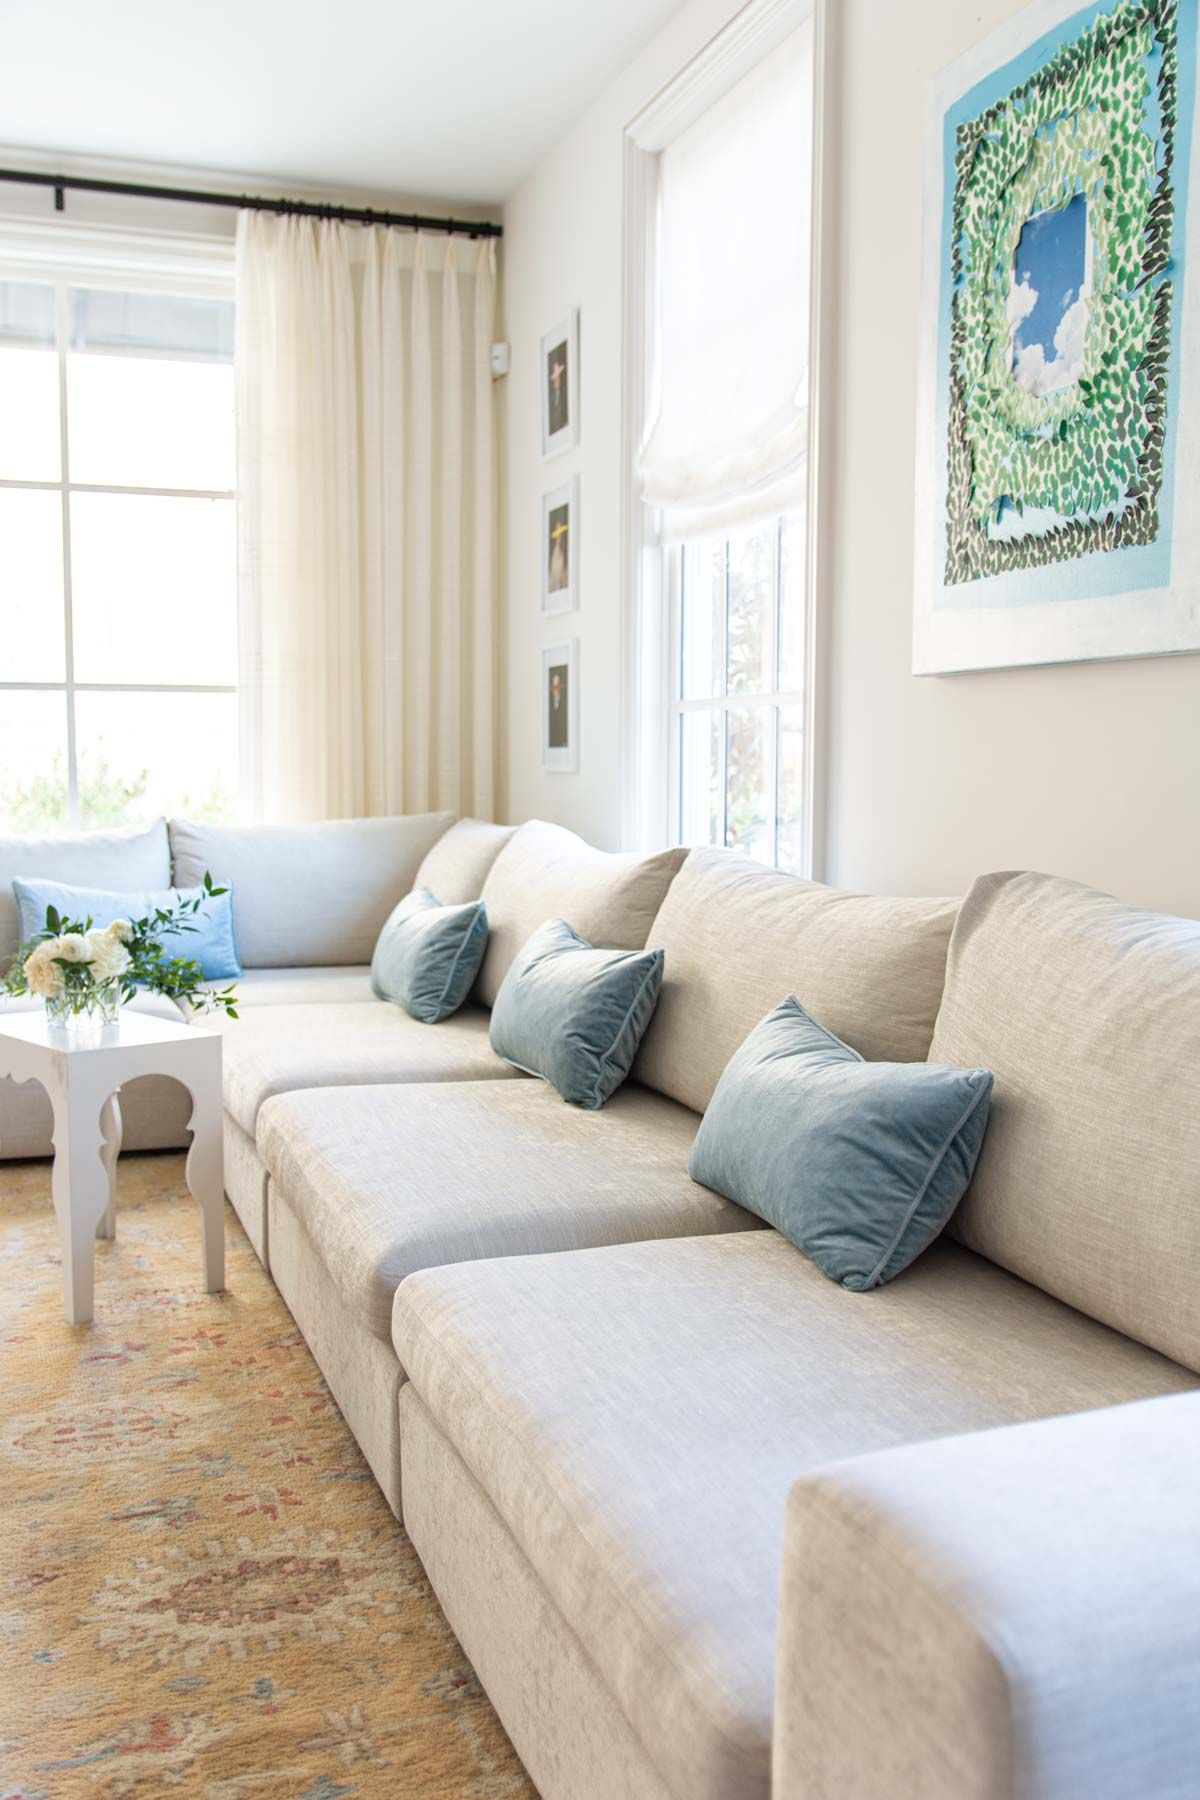 The Article Gaba Sofa Modular Sectional In My Living Room Thou Swell Living Room Design Decor Modular Sectional Family Room Design Small living room big sectional